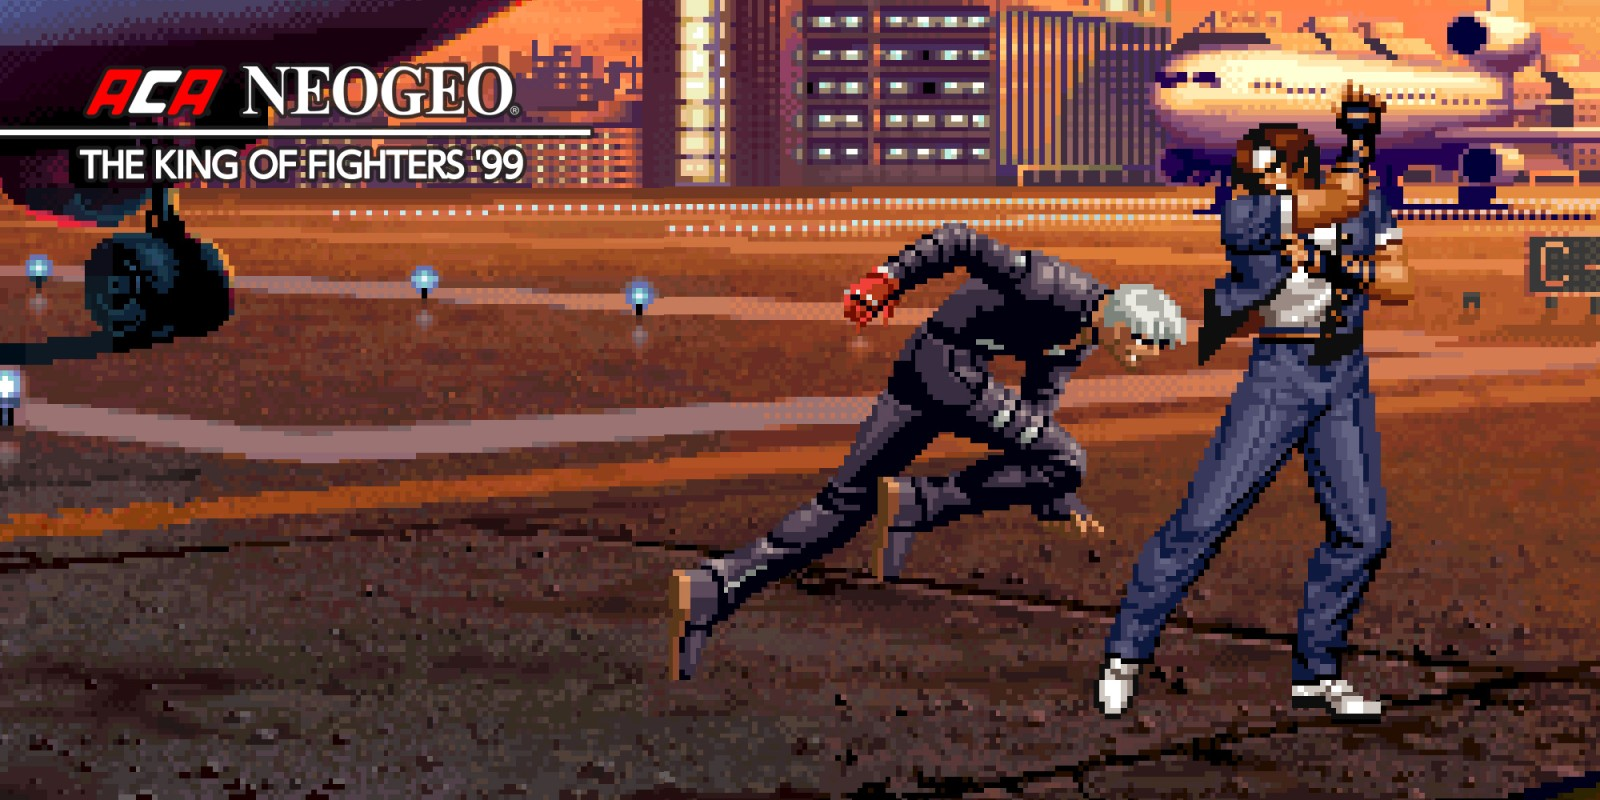 ACA NEOGEO THE KING OF FIGHTERS '99